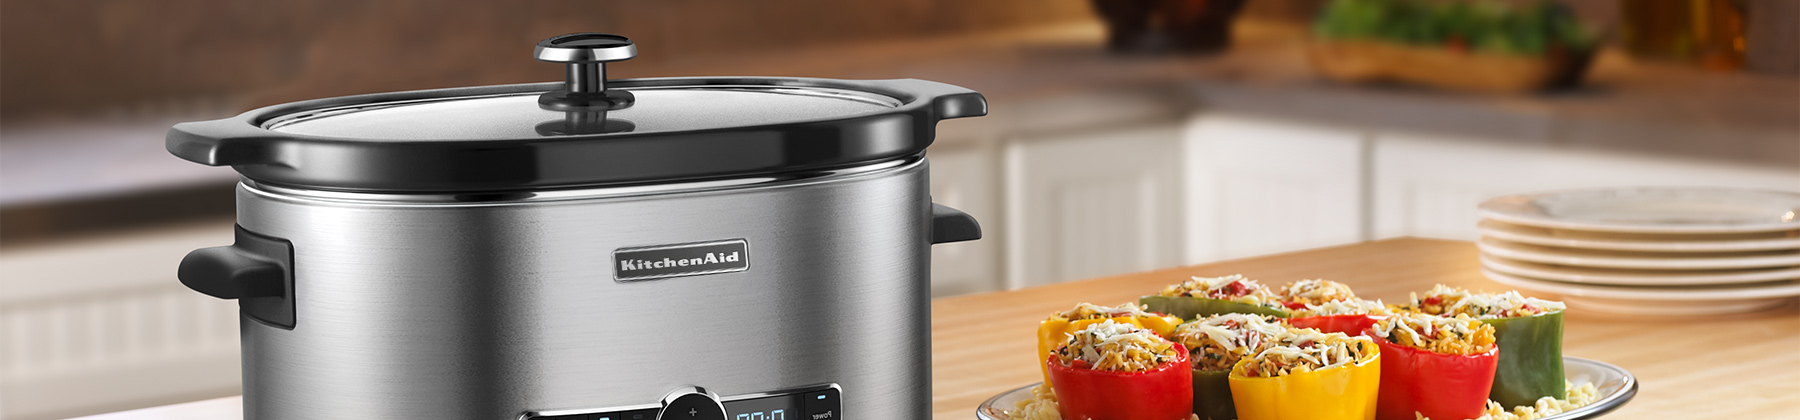 Photo of slow cookers.